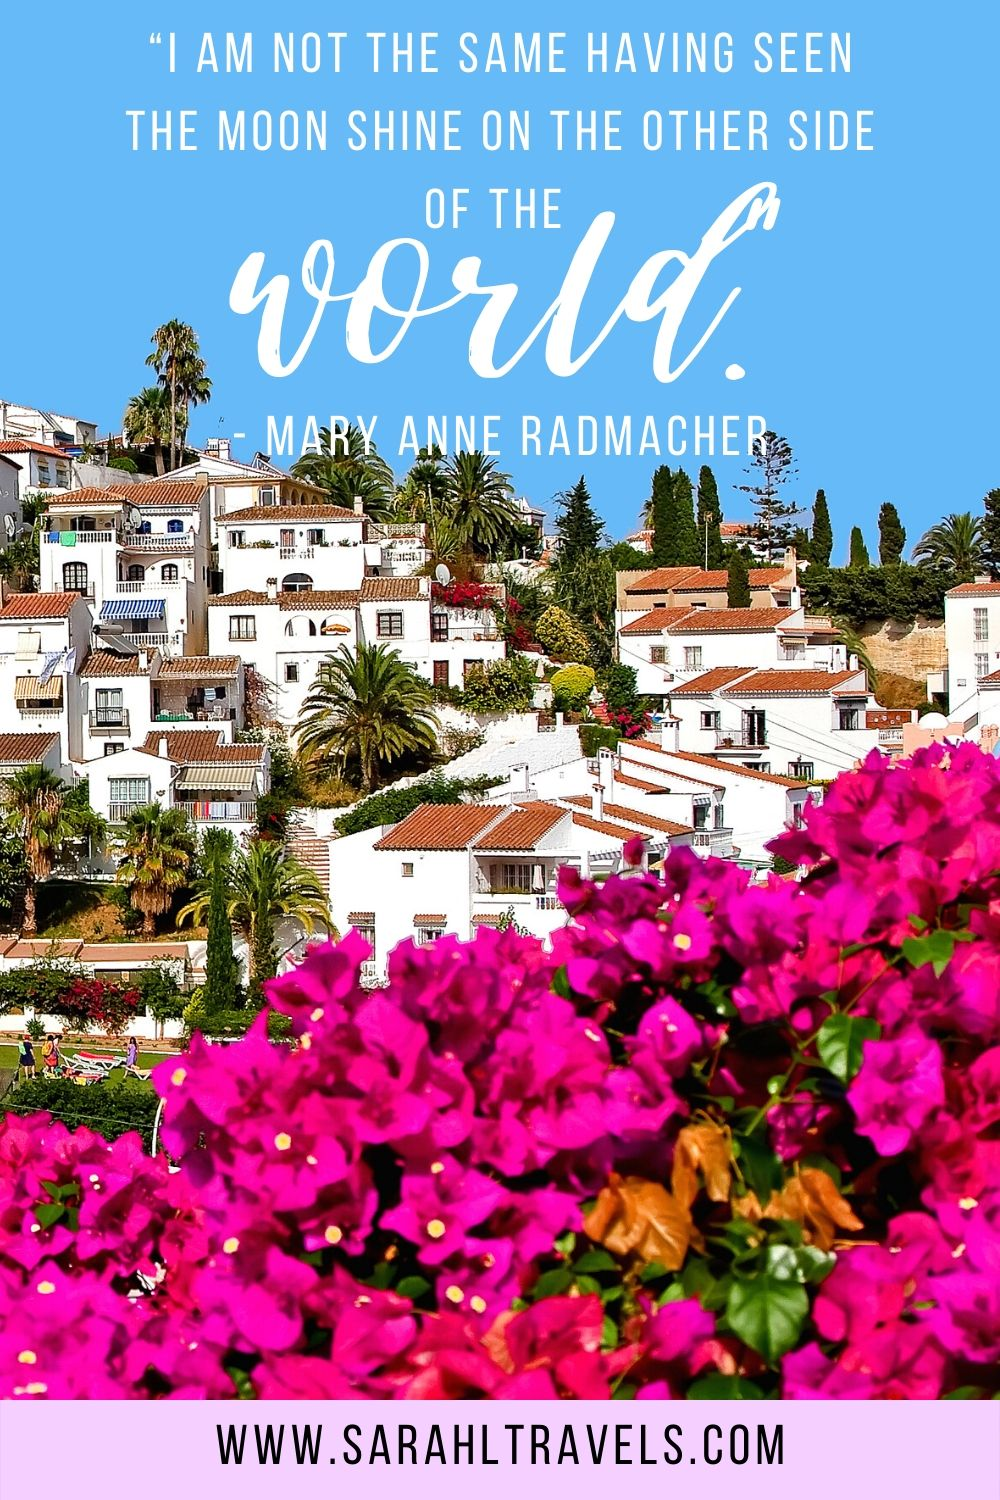 """White houses and fuschia flowers in the Spanish countryside with quote """"I am not the same having seen the moon shine on the other side of the world."""""""